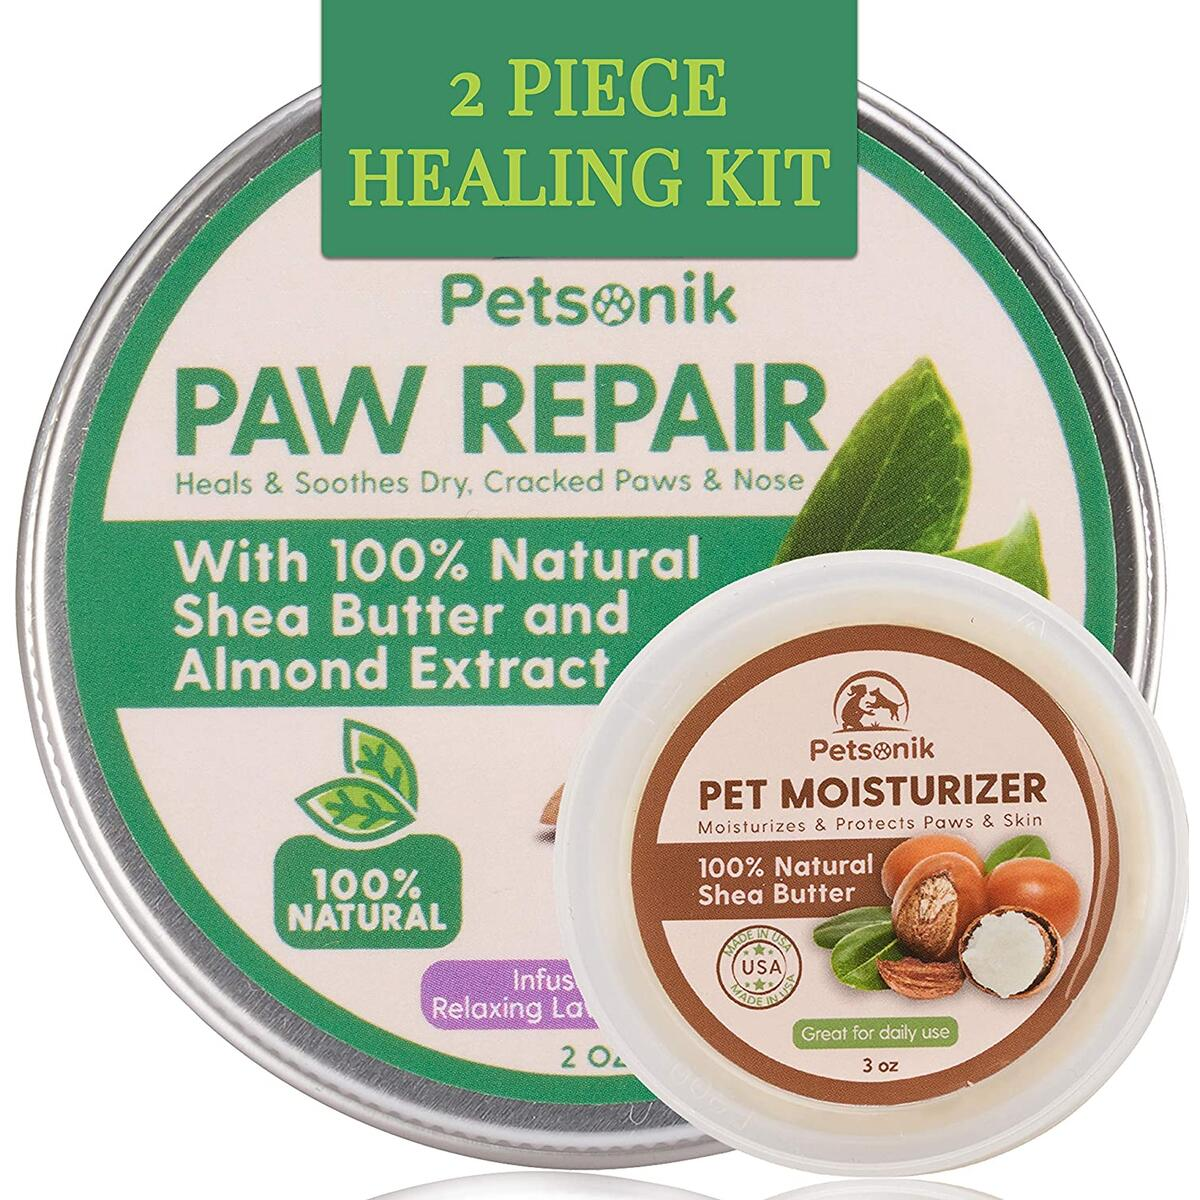 Dog Paw Balm Healing Kit (2 pc) | Paw Repair + Pet Moisturizer & Soother